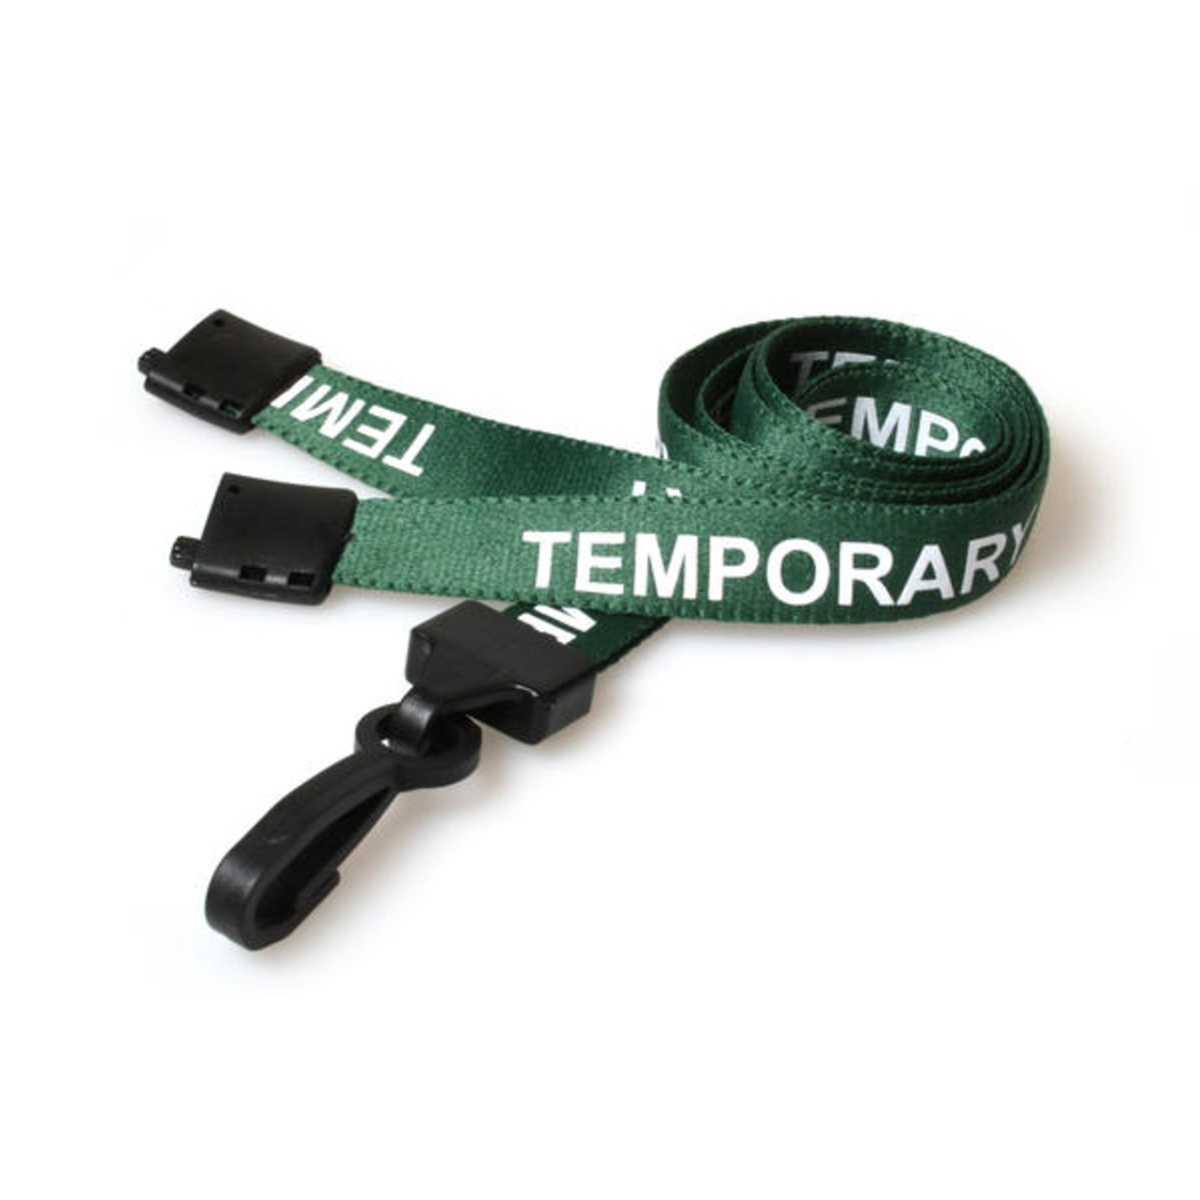 green temporary pre printed lanyard with plastic hook and breakaway